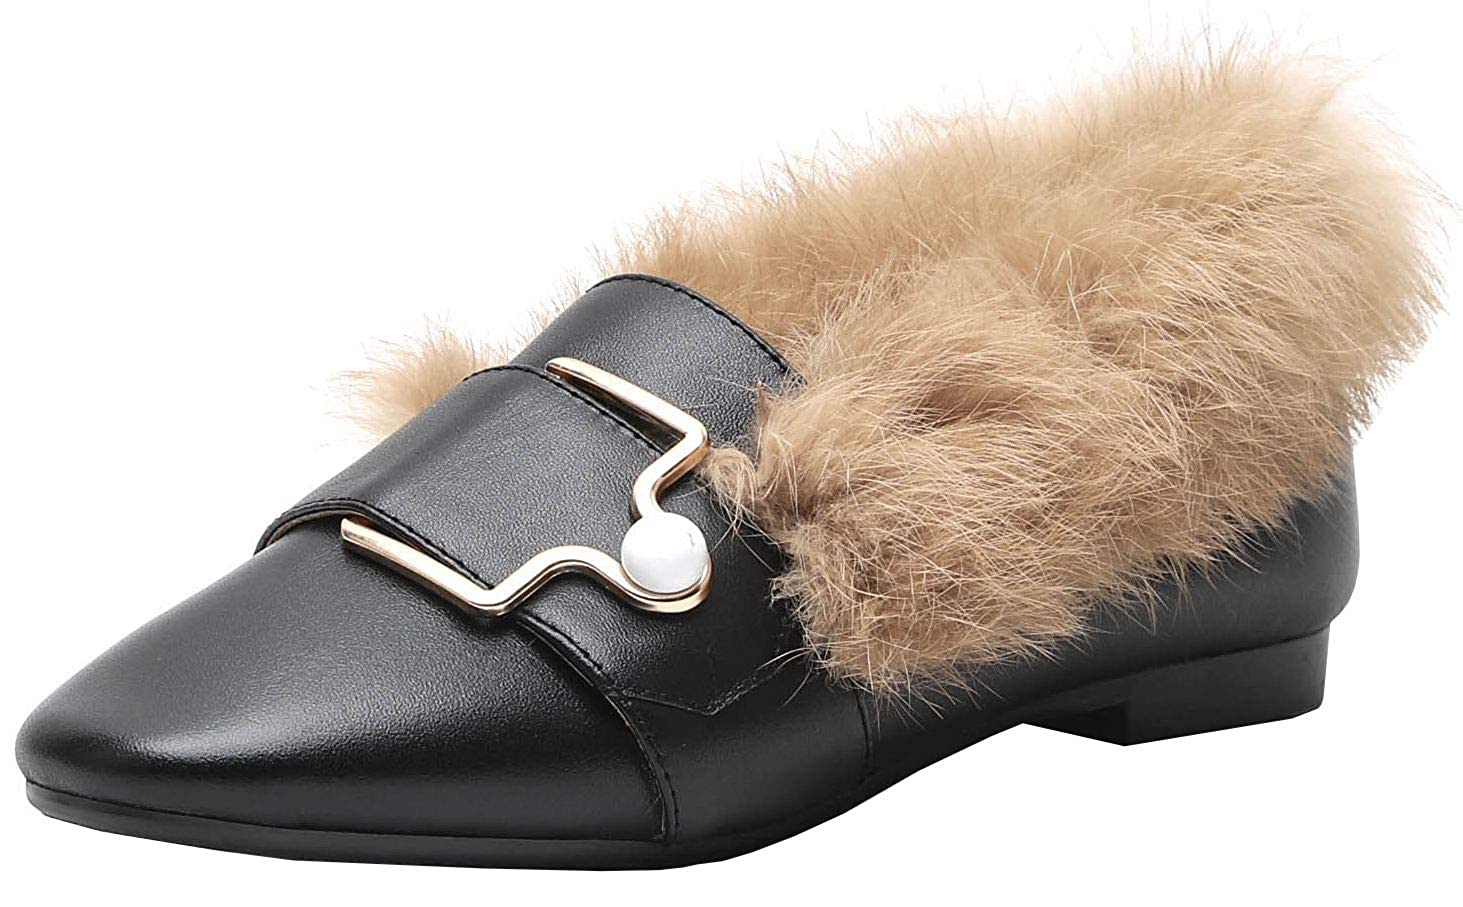 ddbd2212ab8 Vitalo Womens Slip On Flats Loafers Slides Backless Fur Mules Slippers with  Furry  Amazon.co.uk  Shoes   Bags